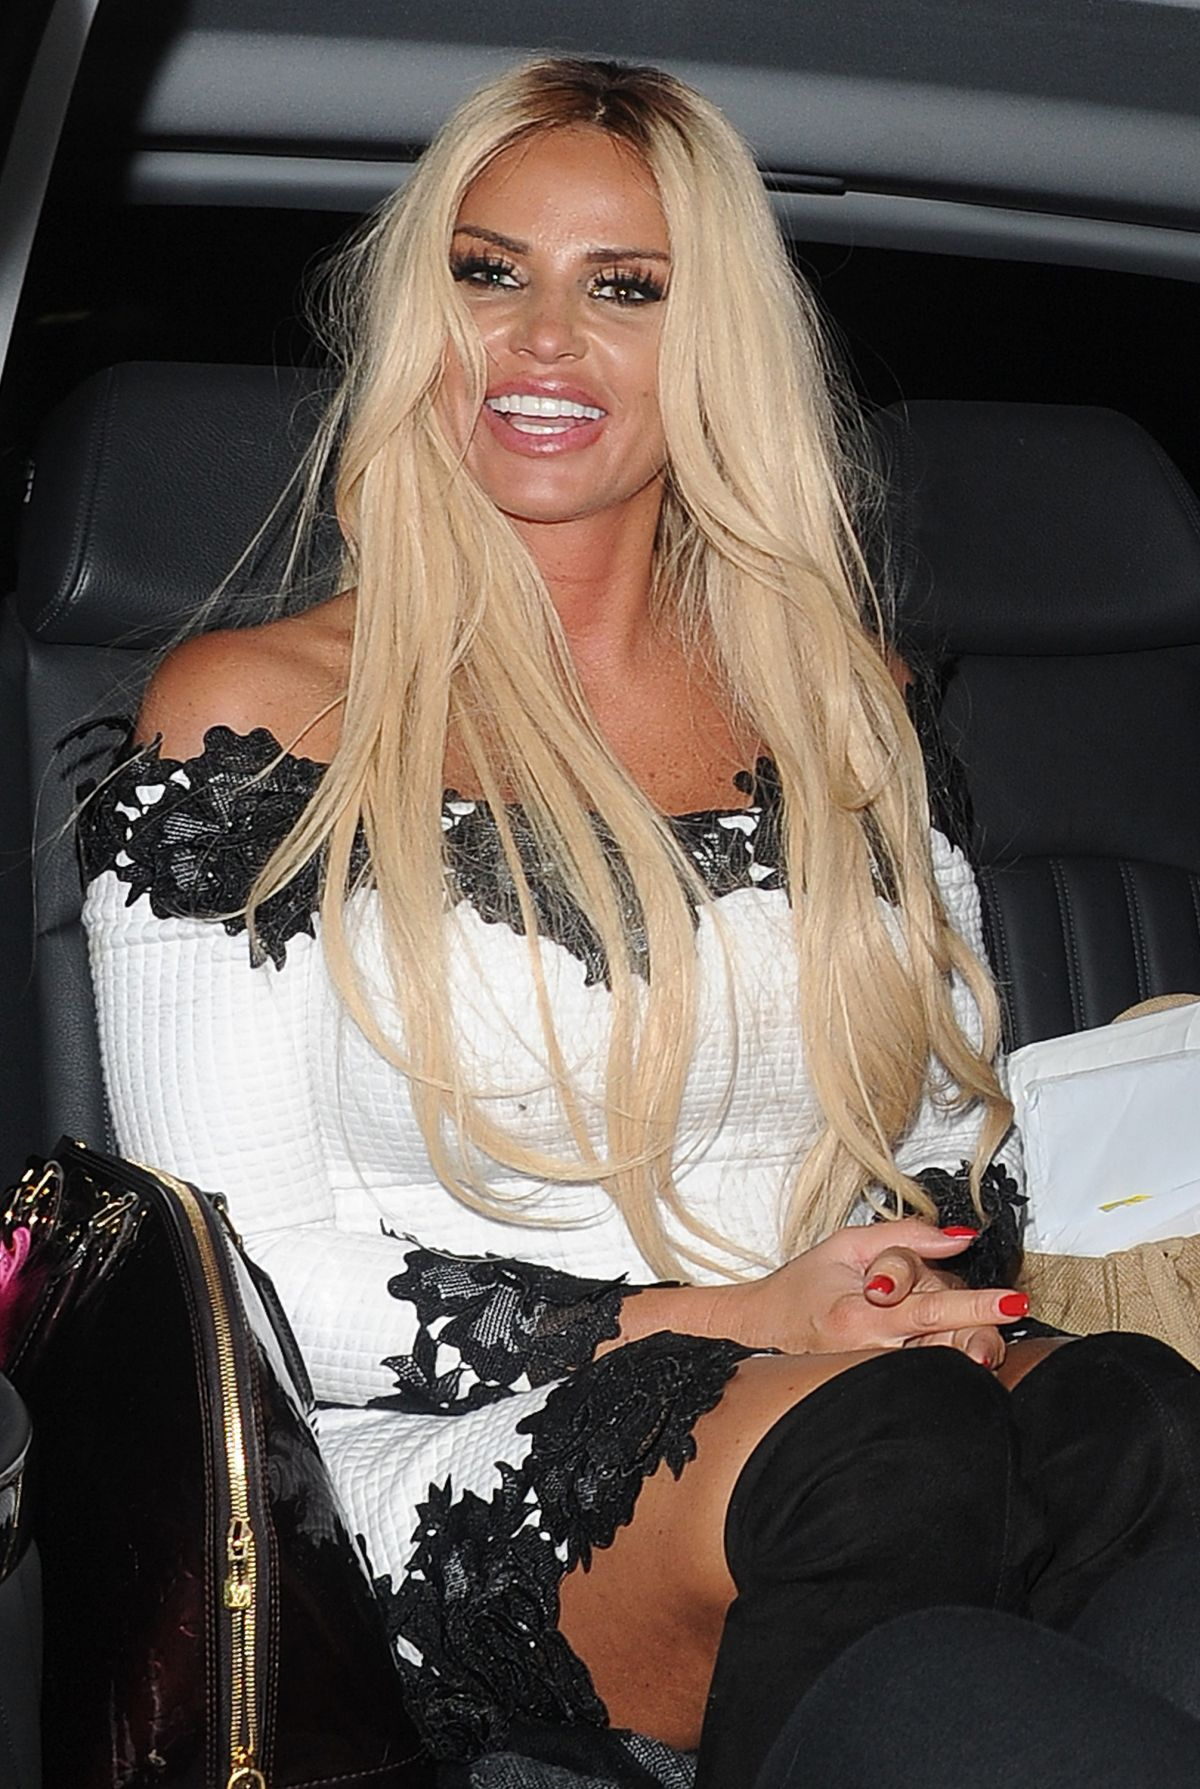 Katie Price Out for the evening in London   katie-price-out-for-the-evening-in-london_12